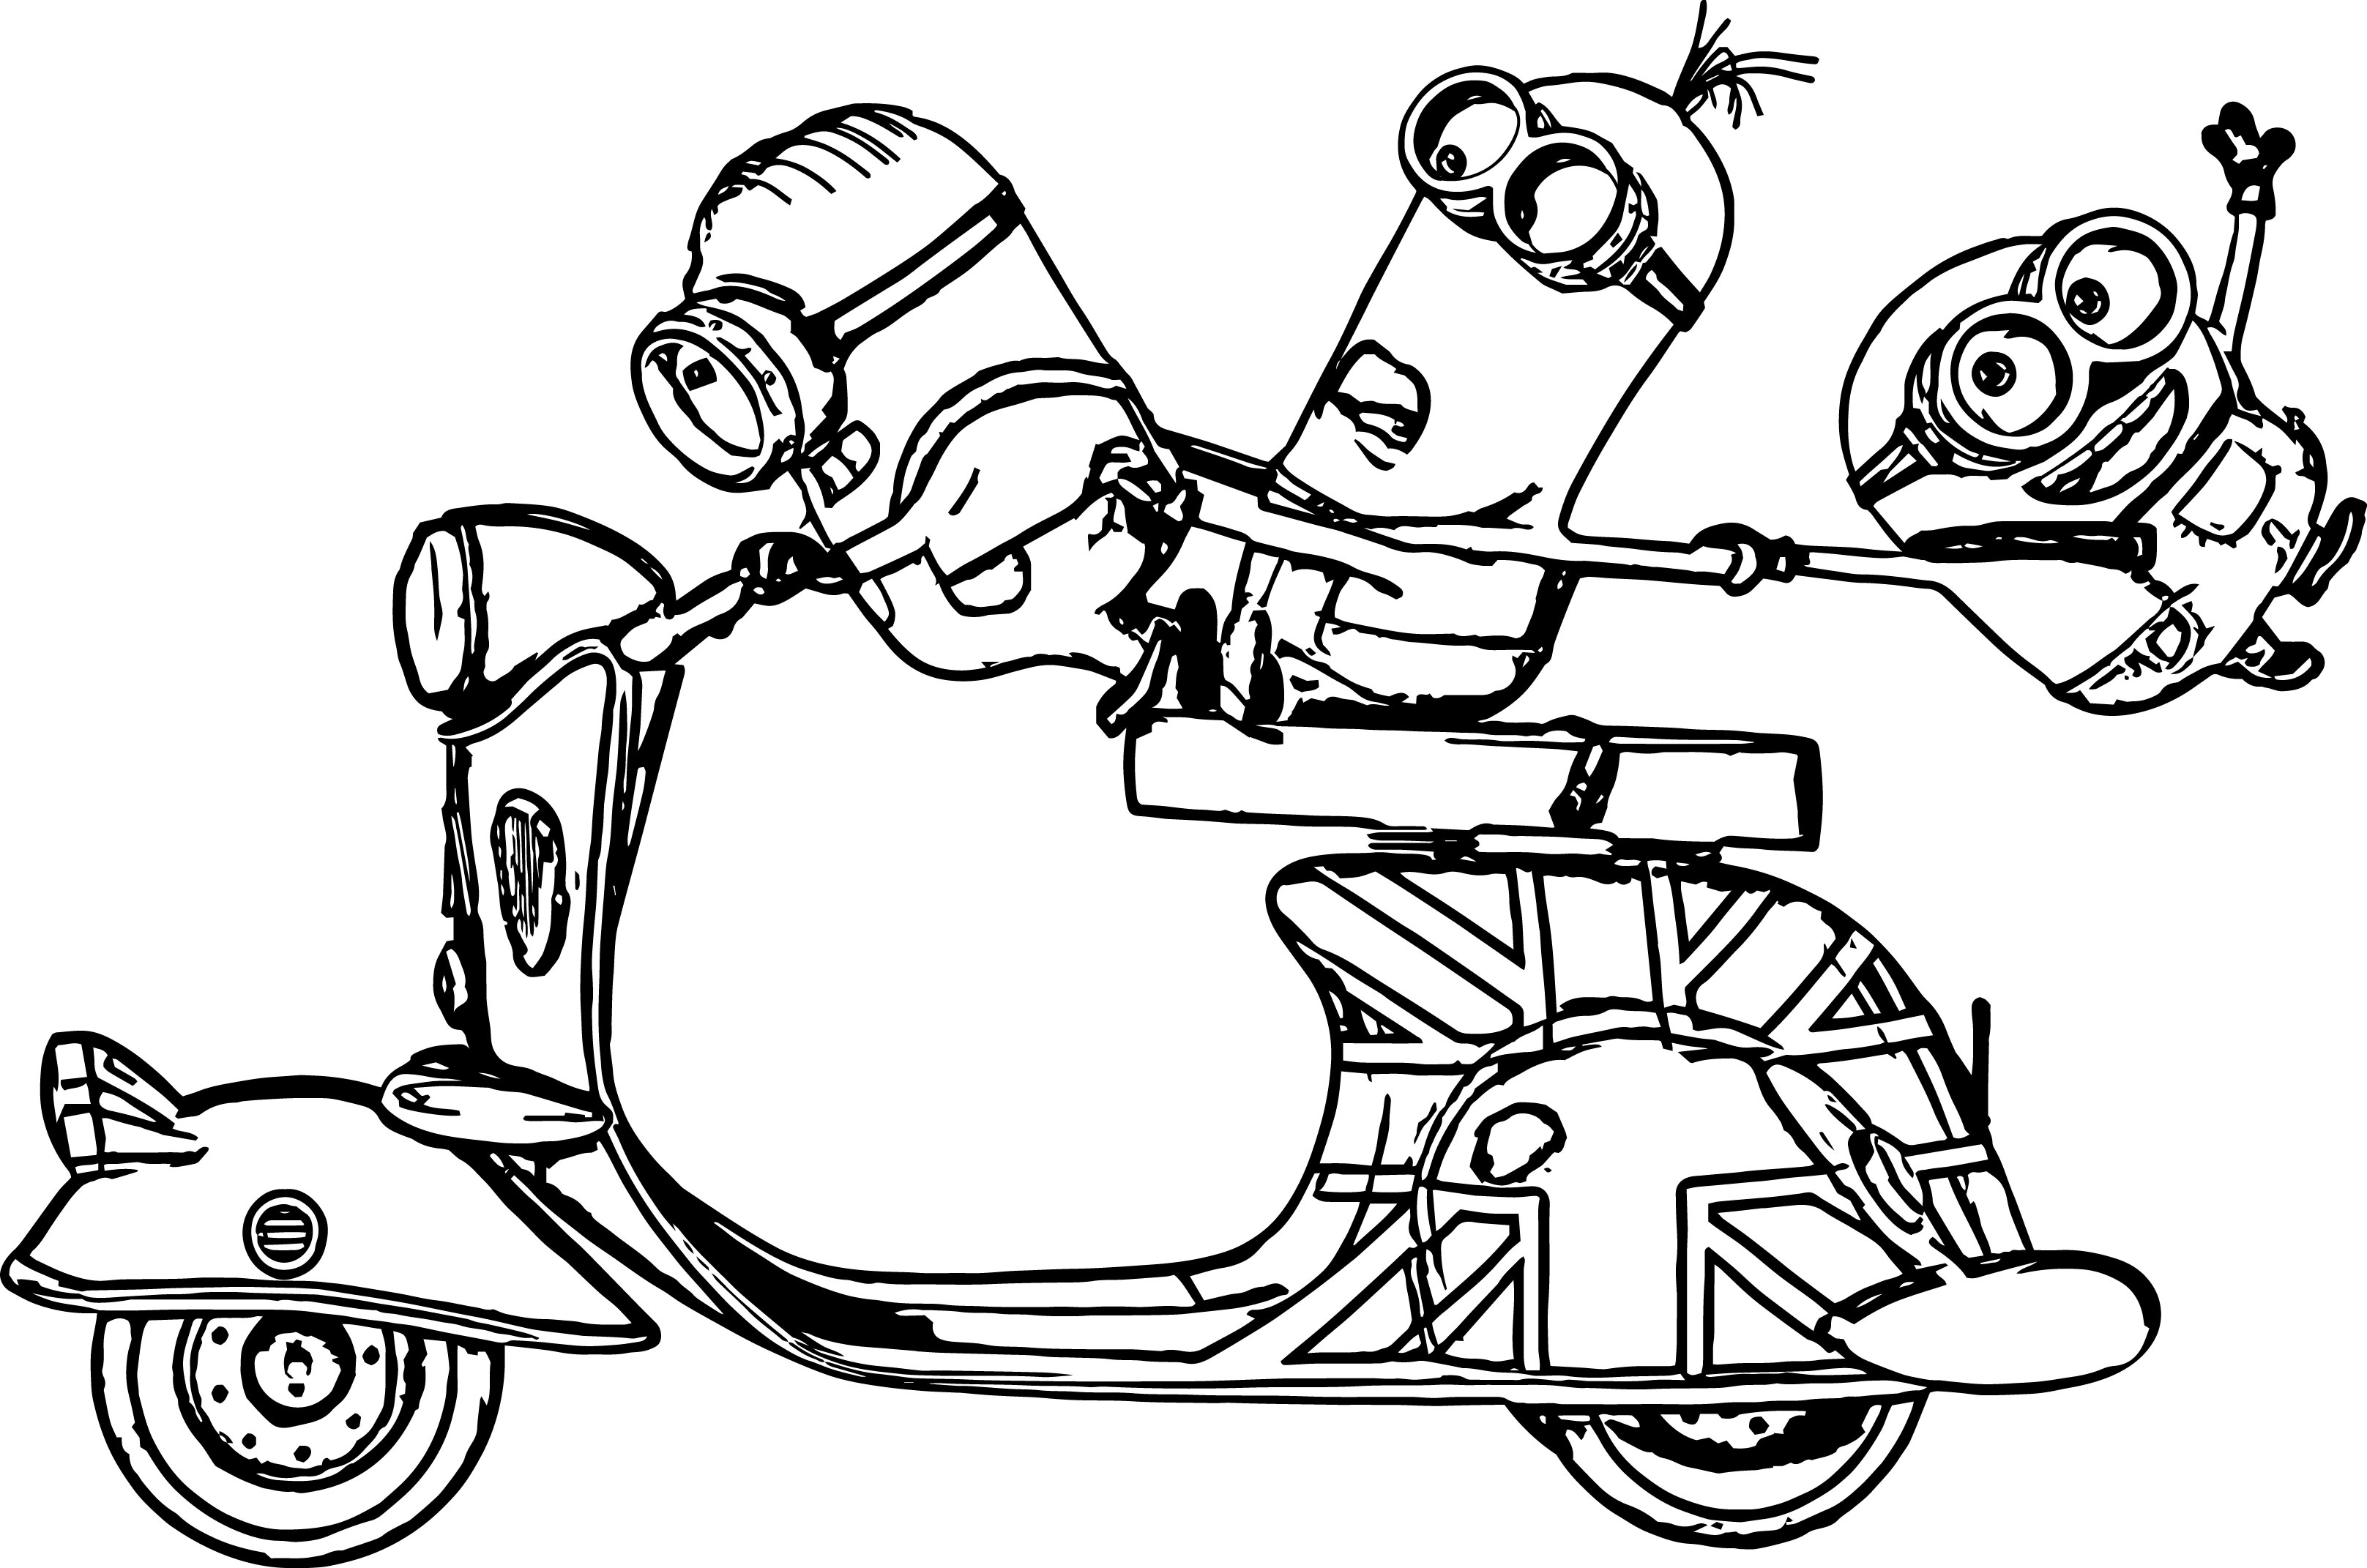 Minions Coloring Pages Minions Scooter Bob Kevin Stuart Despicable Me Coloring Page